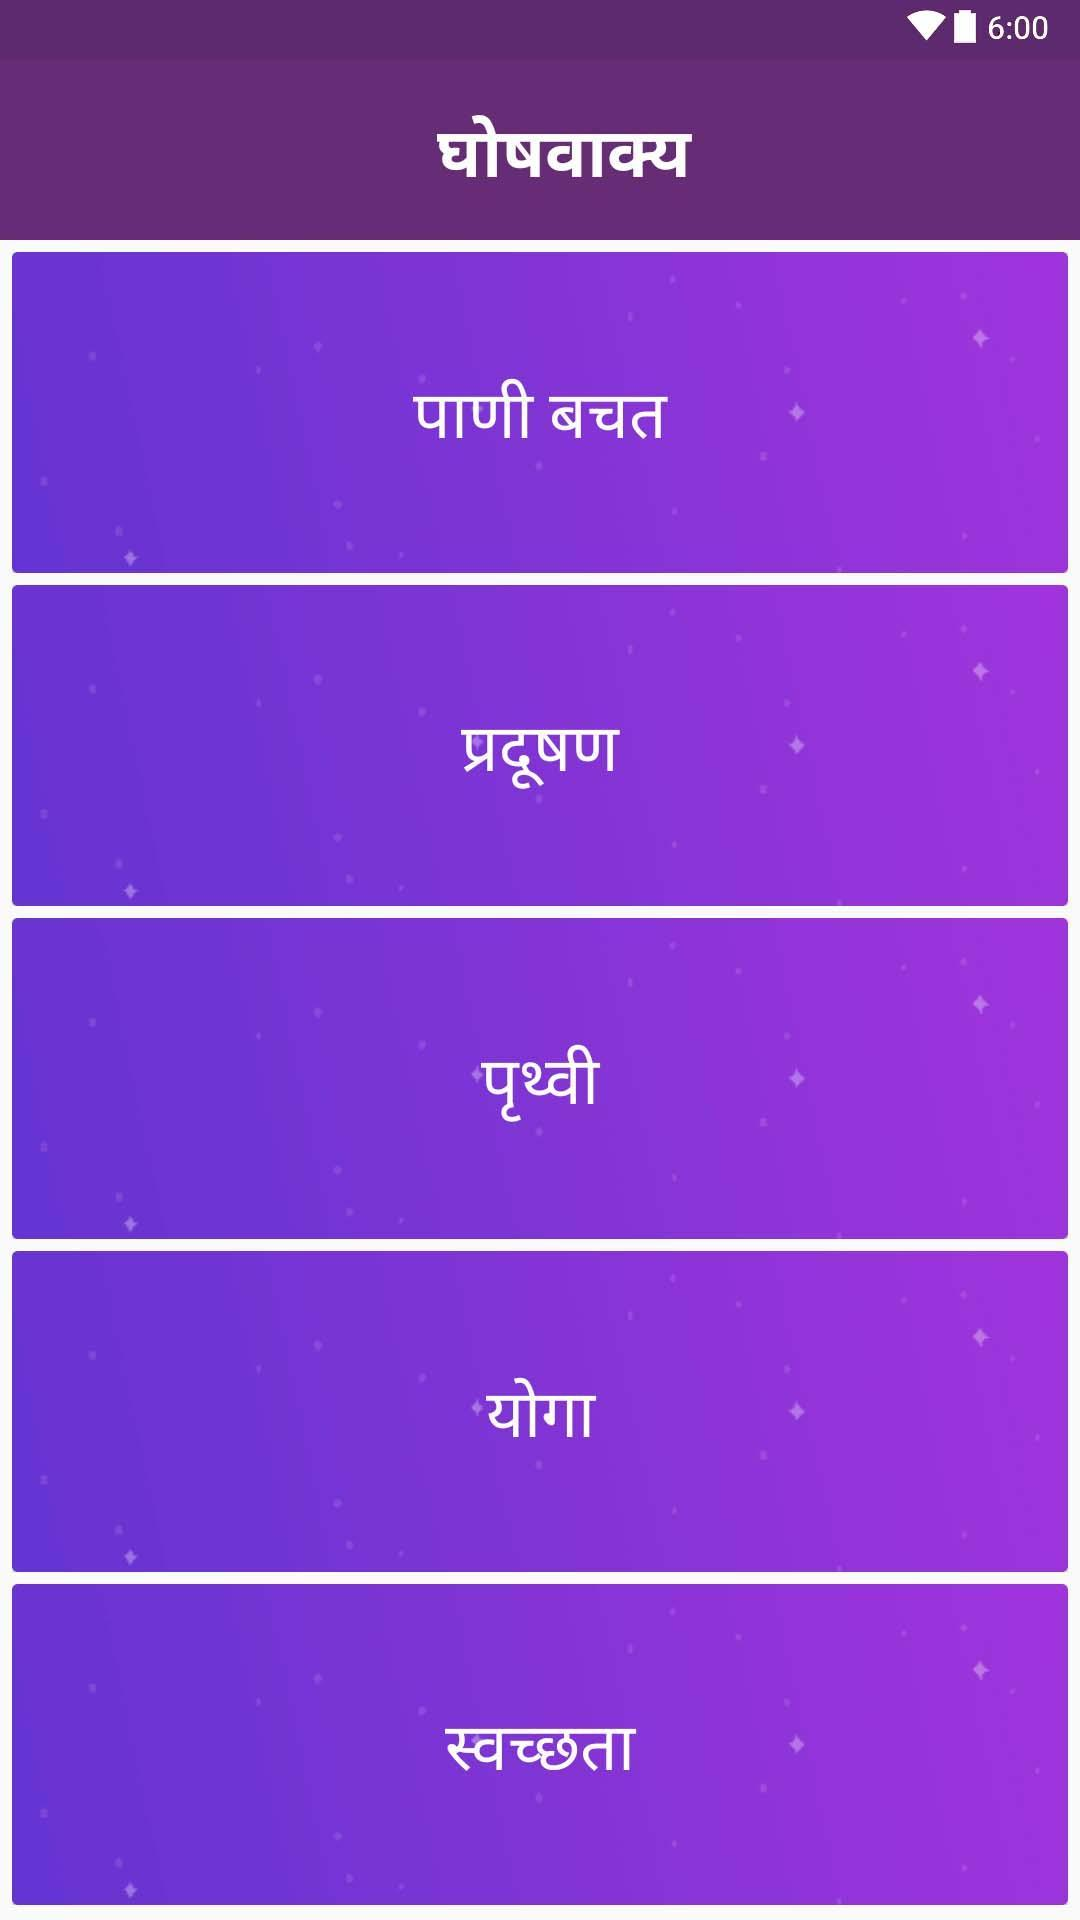 घोषवाक्य for Android - APK Download